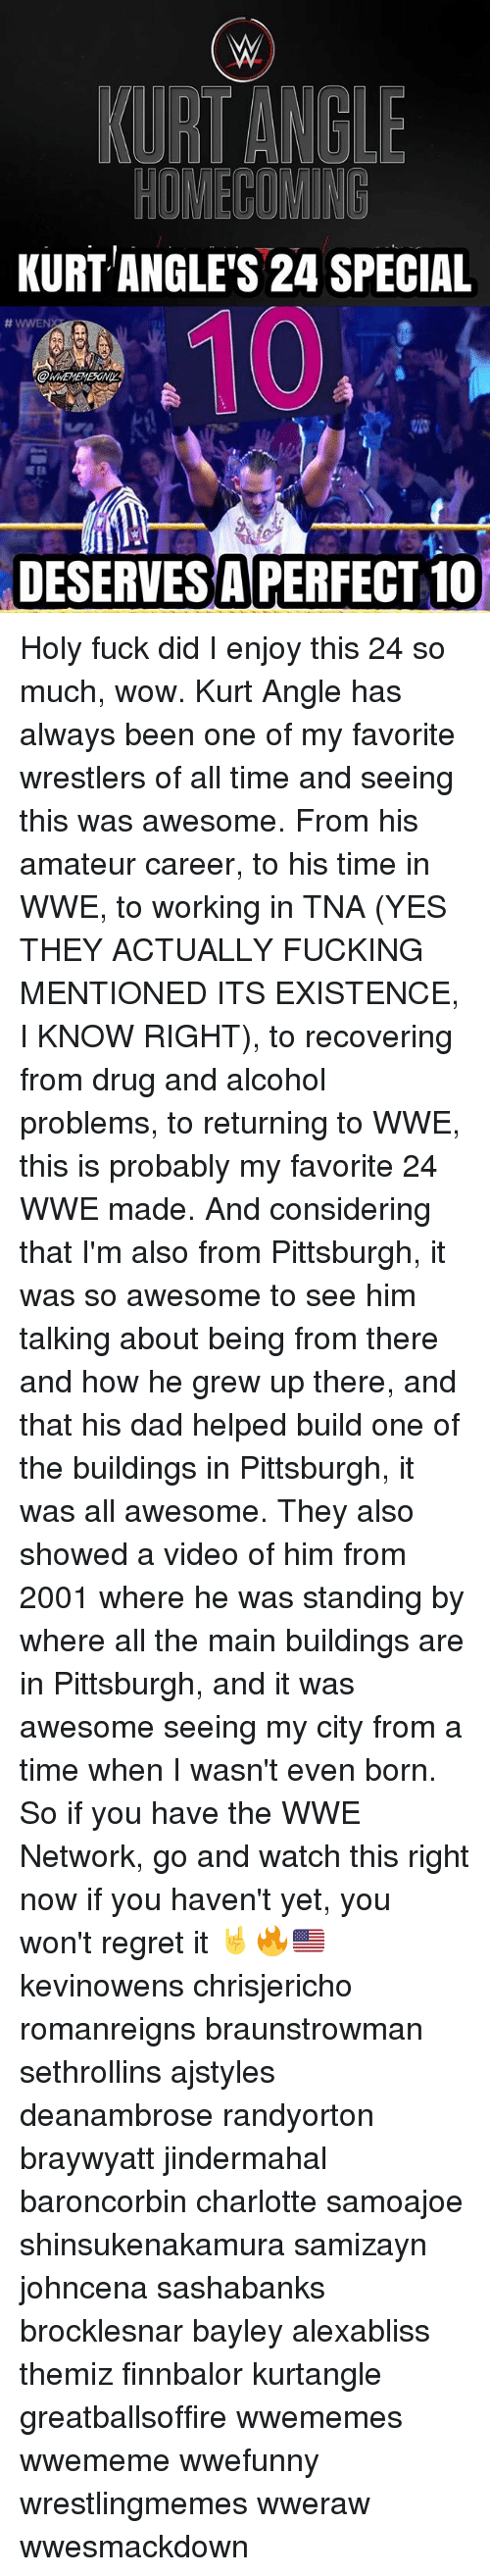 Dad, Fucking, and Memes: KURT ANGLE'S 24 SPECIAL  OWWEMEMESONIY  DESERVES A PERFECT 10 Holy fuck did I enjoy this 24 so much, wow. Kurt Angle has always been one of my favorite wrestlers of all time and seeing this was awesome. From his amateur career, to his time in WWE, to working in TNA (YES THEY ACTUALLY FUCKING MENTIONED ITS EXISTENCE, I KNOW RIGHT), to recovering from drug and alcohol problems, to returning to WWE, this is probably my favorite 24 WWE made. And considering that I'm also from Pittsburgh, it was so awesome to see him talking about being from there and how he grew up there, and that his dad helped build one of the buildings in Pittsburgh, it was all awesome. They also showed a video of him from 2001 where he was standing by where all the main buildings are in Pittsburgh, and it was awesome seeing my city from a time when I wasn't even born. So if you have the WWE Network, go and watch this right now if you haven't yet, you won't regret it 🤘🔥🇺🇸 kevinowens chrisjericho romanreigns braunstrowman sethrollins ajstyles deanambrose randyorton braywyatt jindermahal baroncorbin charlotte samoajoe shinsukenakamura samizayn johncena sashabanks brocklesnar bayley alexabliss themiz finnbalor kurtangle greatballsoffire wwememes wwememe wwefunny wrestlingmemes wweraw wwesmackdown